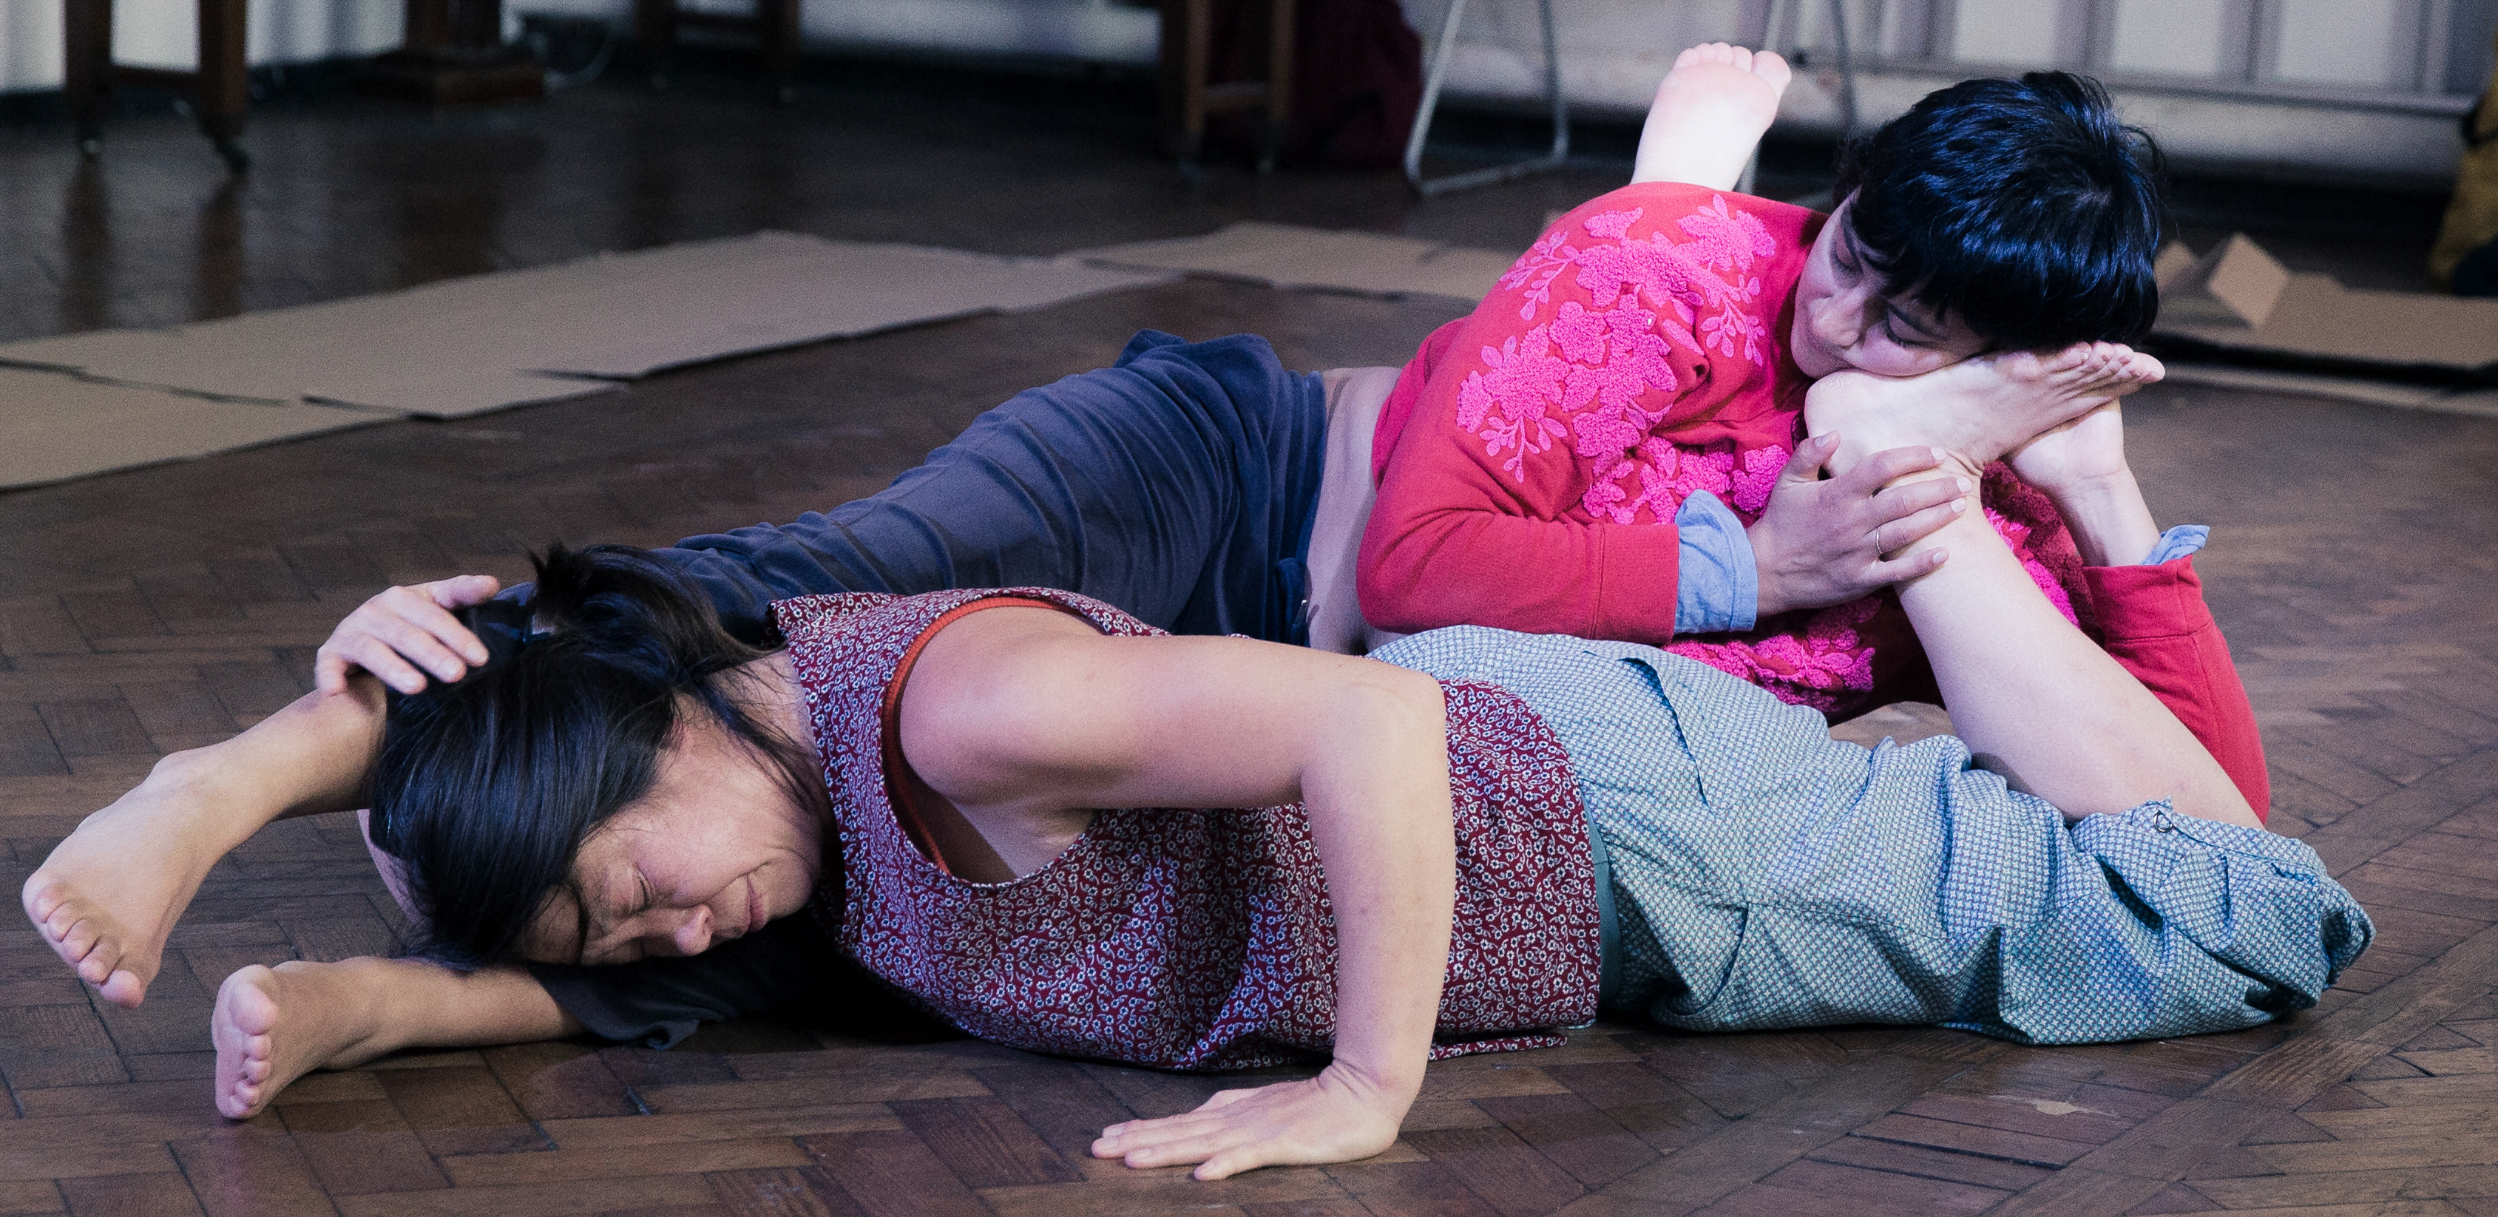 Jo Fong and Anushiye Yarnell are dancing in contact on a wooden floor. Jo is wearing a purple top and blue trousers, and facing down with one hand flat against the floor and the other wrapped around Anushiye's ankle. Anushiye is slightly above Jo, wearing a pink top and darker blue trousers. Anushiye has her face pressed against Jo's foot.